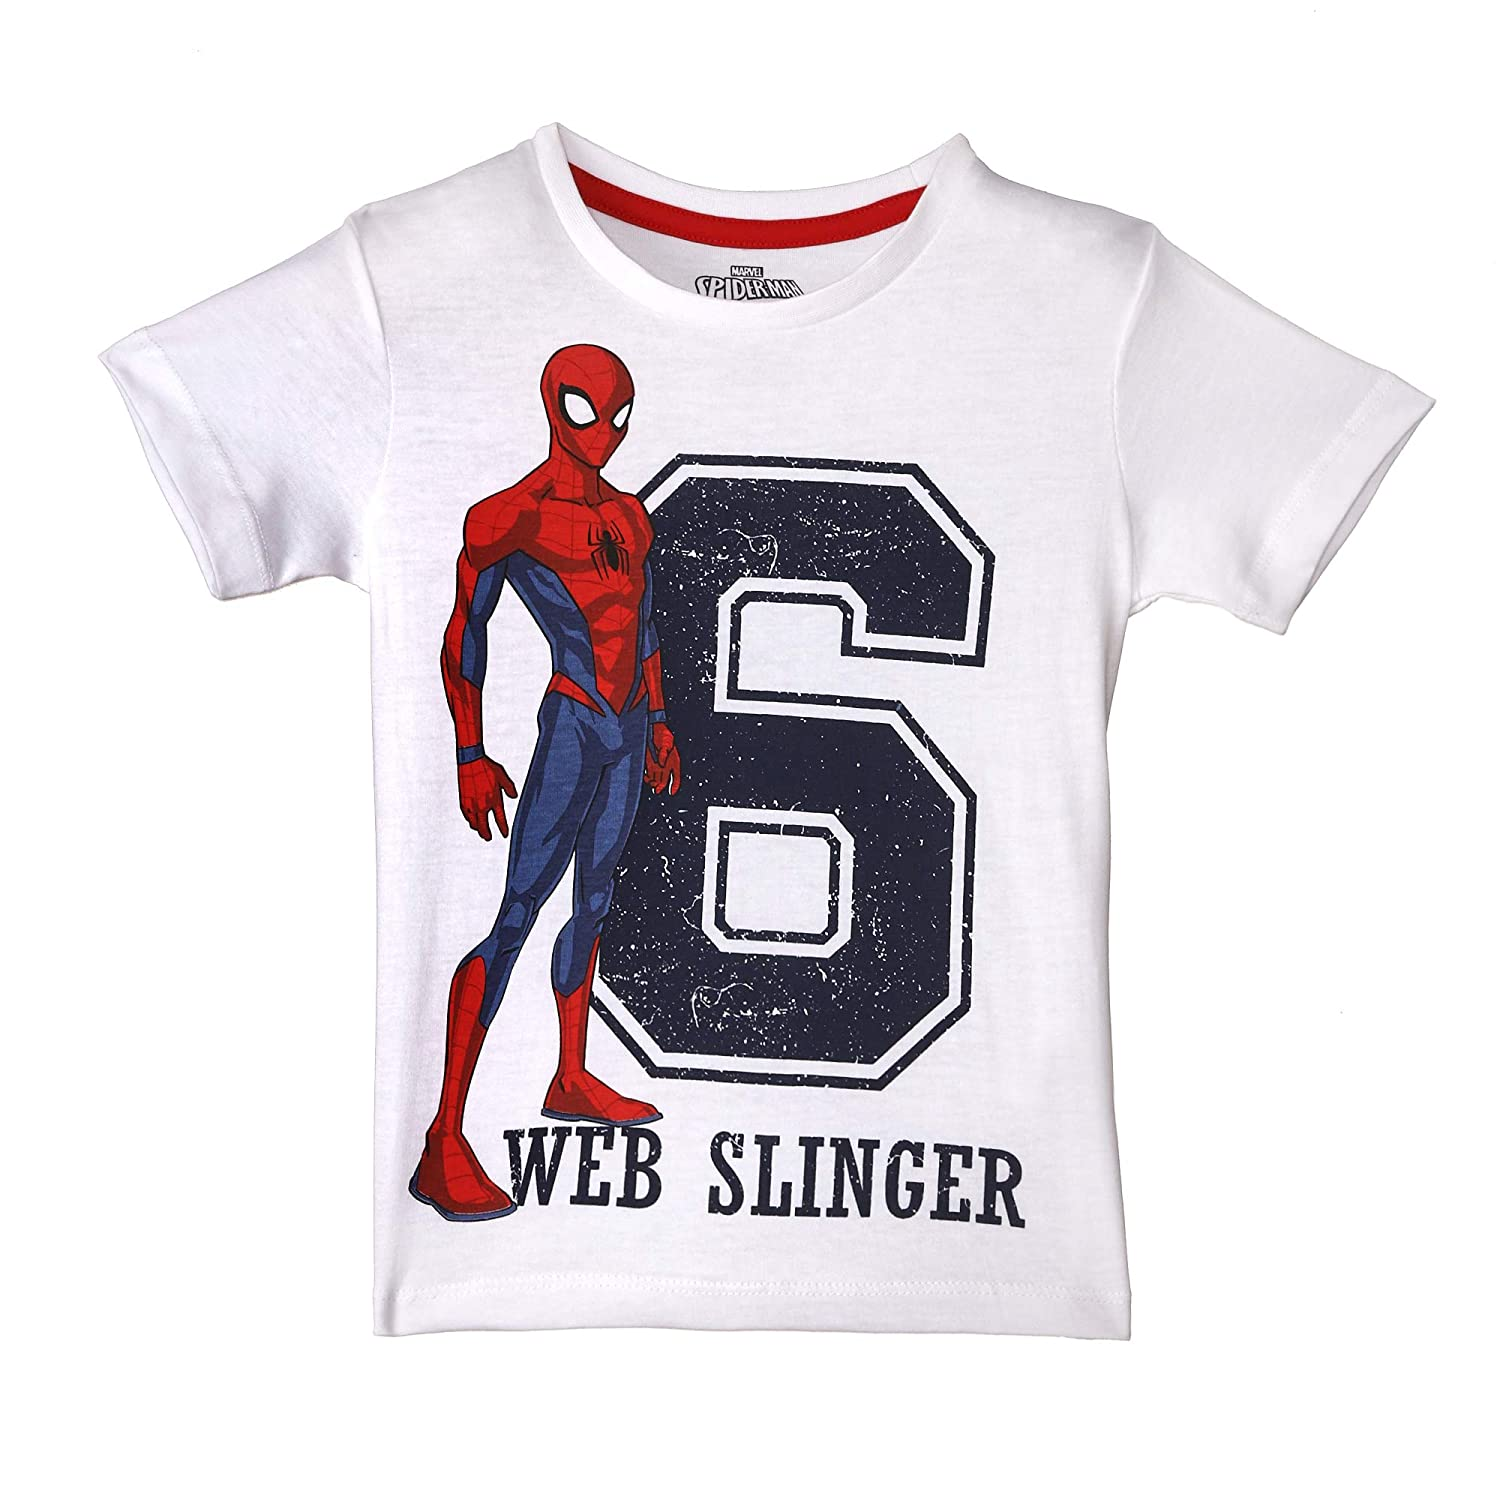 0f8262f3 Spiderman By Kidsville Boy's Half Sleeve T Shirt: Amazon.in: Clothing &  Accessories